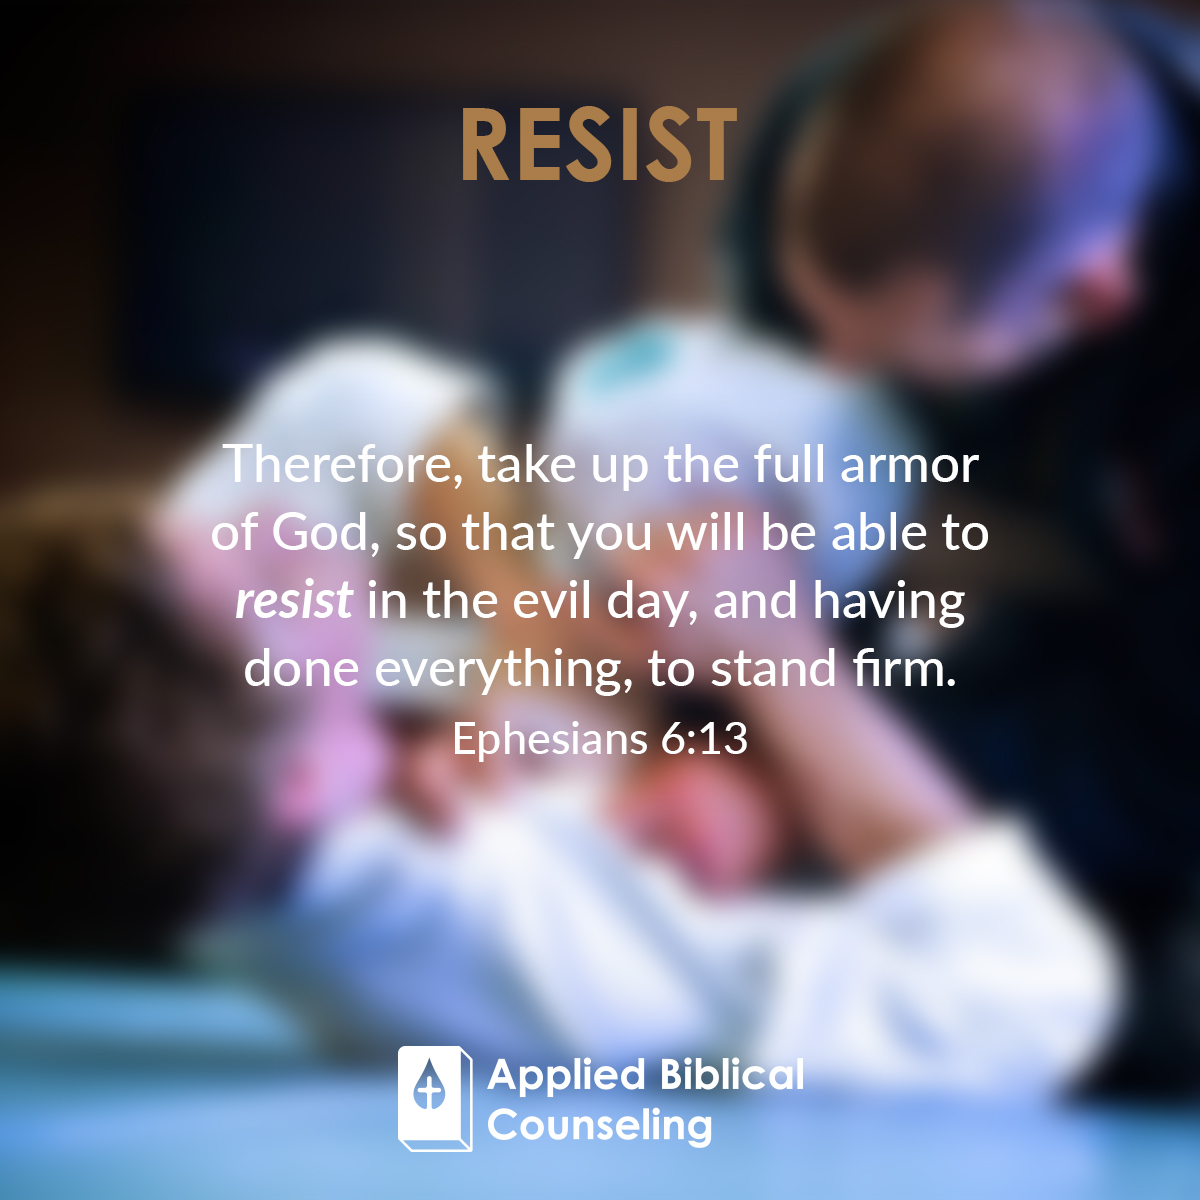 Resist Applied Biblical Counseling 4